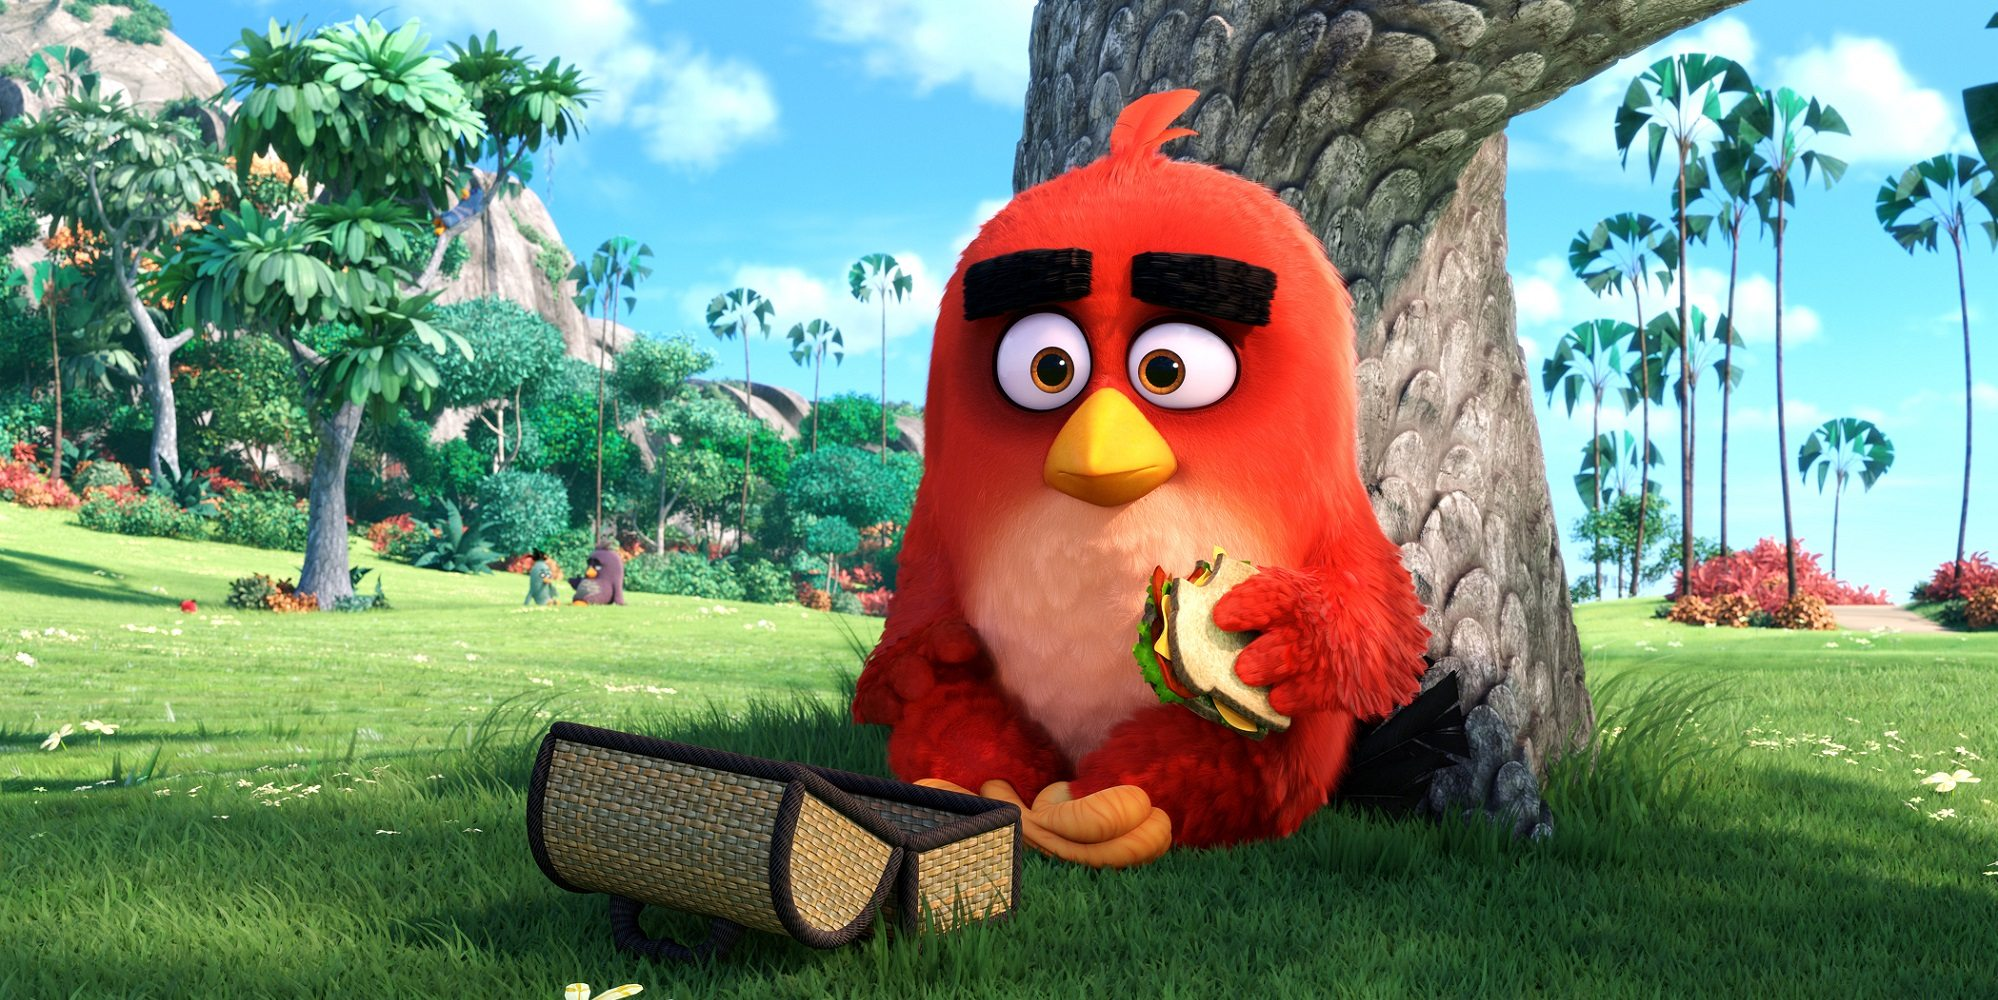 The Angry Birds Hatchlings Send Easter Greetings and Adorableness